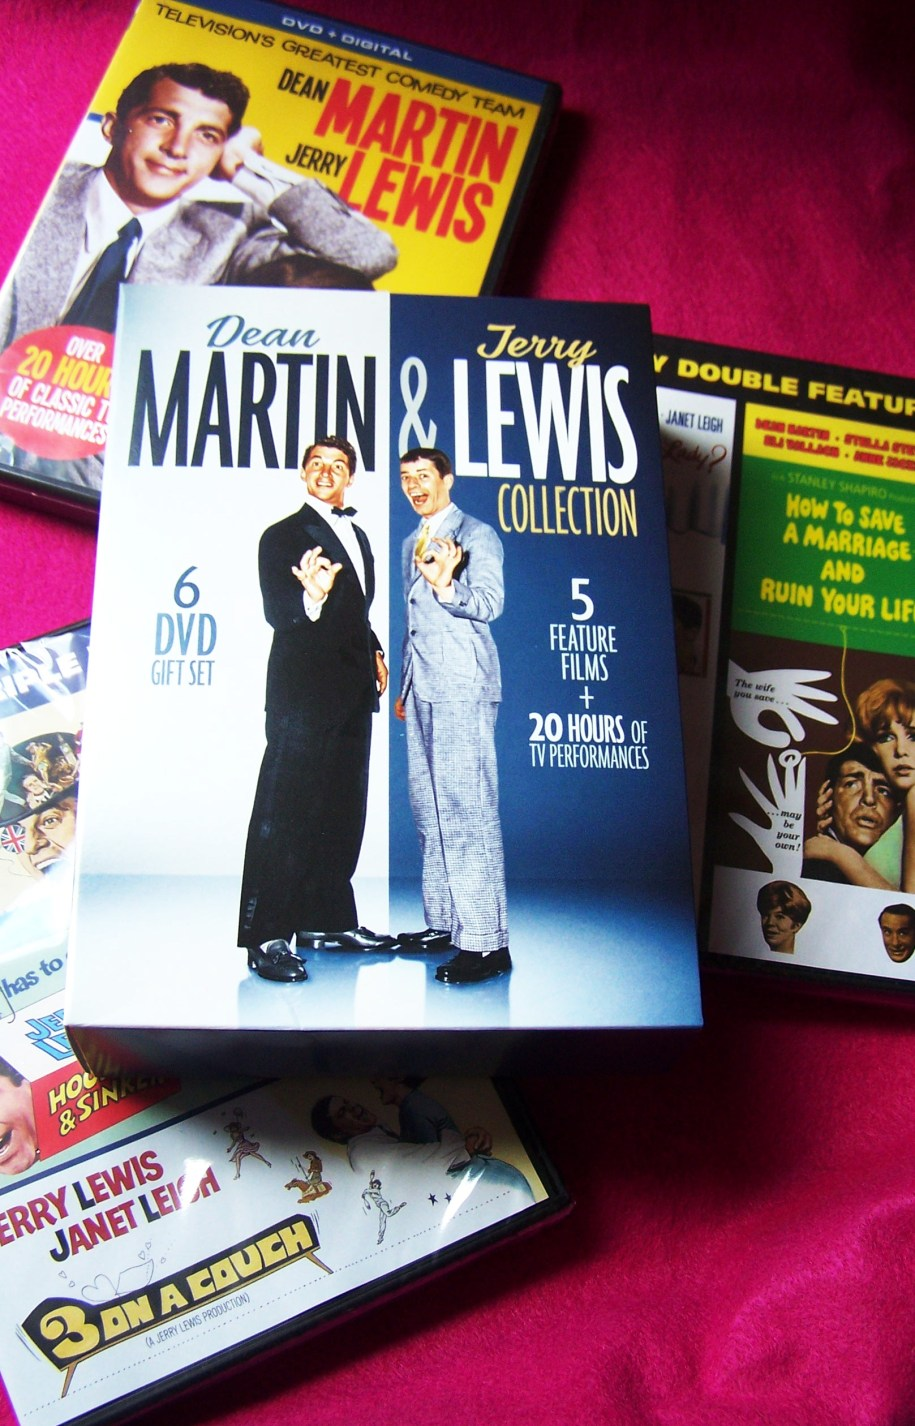 dean martin and jerry llewis movie and tv collection film television review gift guide blog blogger pr fiendly brand brands films t.v. shows best father's day gifts presents